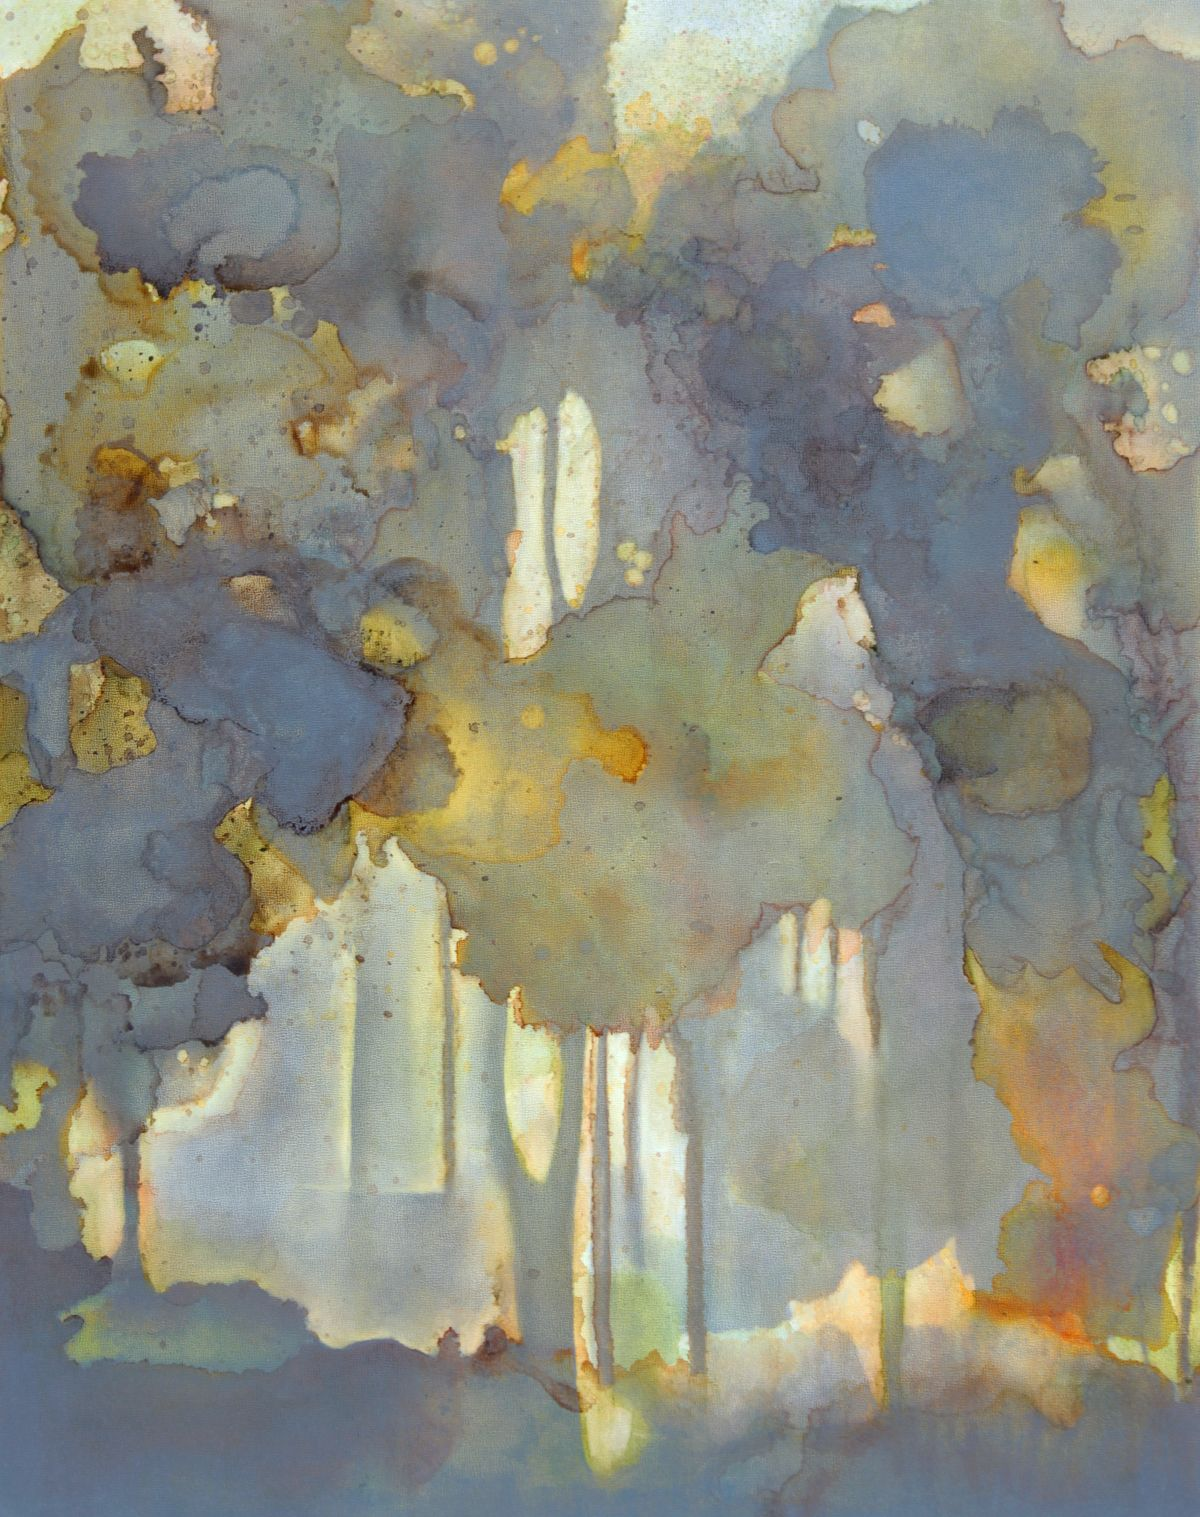 Tree of Life No. 3 | Art | Pinterest | Watercolor, Landscaping and ...